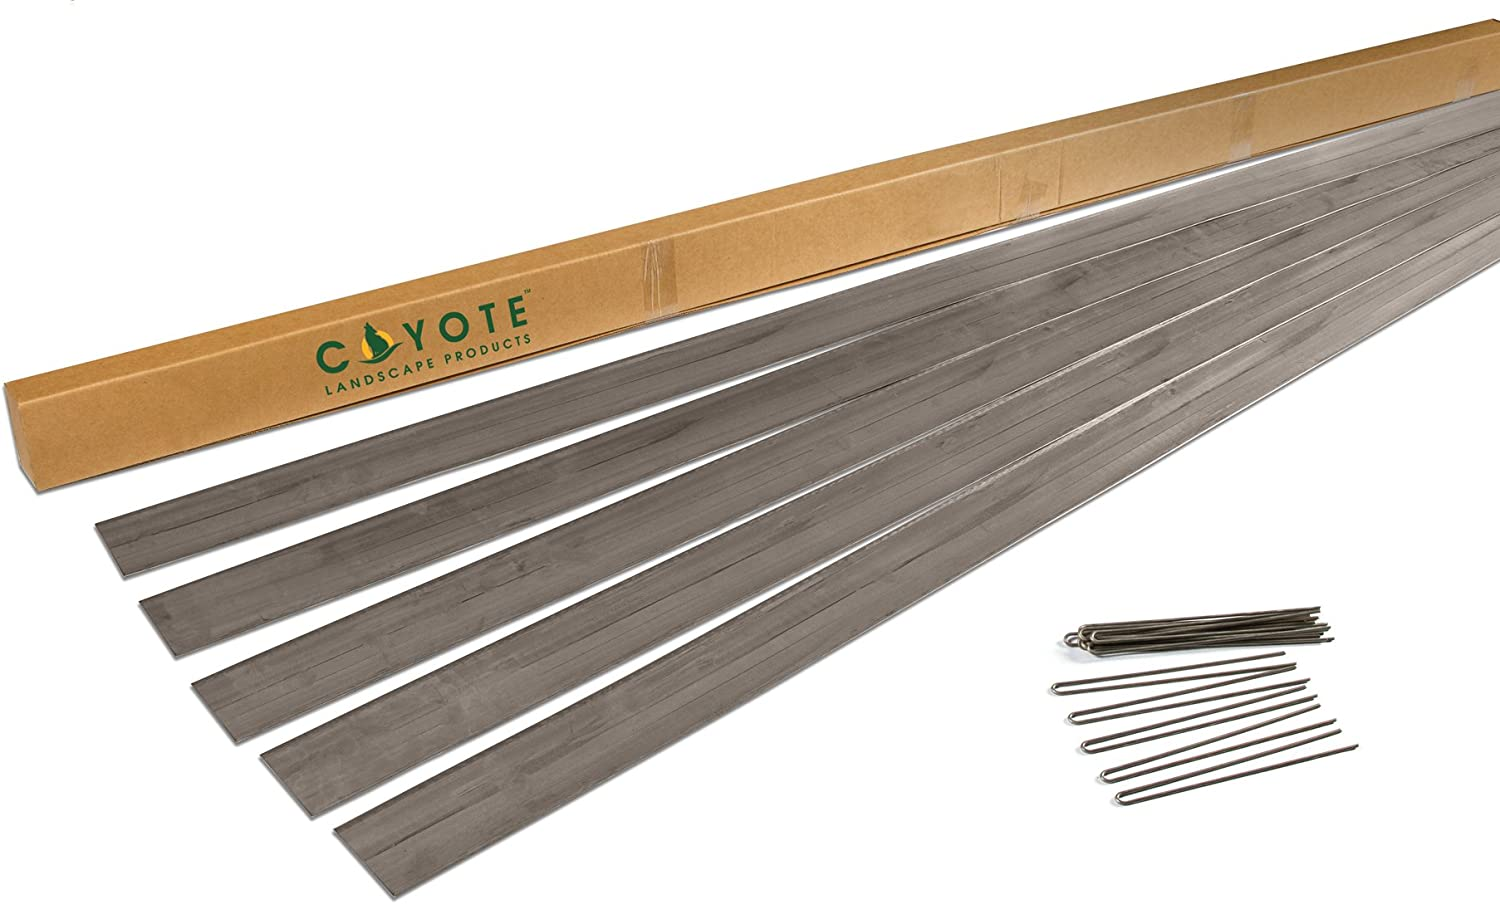 """Coyote Landscape Products 5 each 6"""" X 8' x18 gauge Rolled Top Raw Lawn Edging Home Kit with 15 each Raw Edge Pins"""